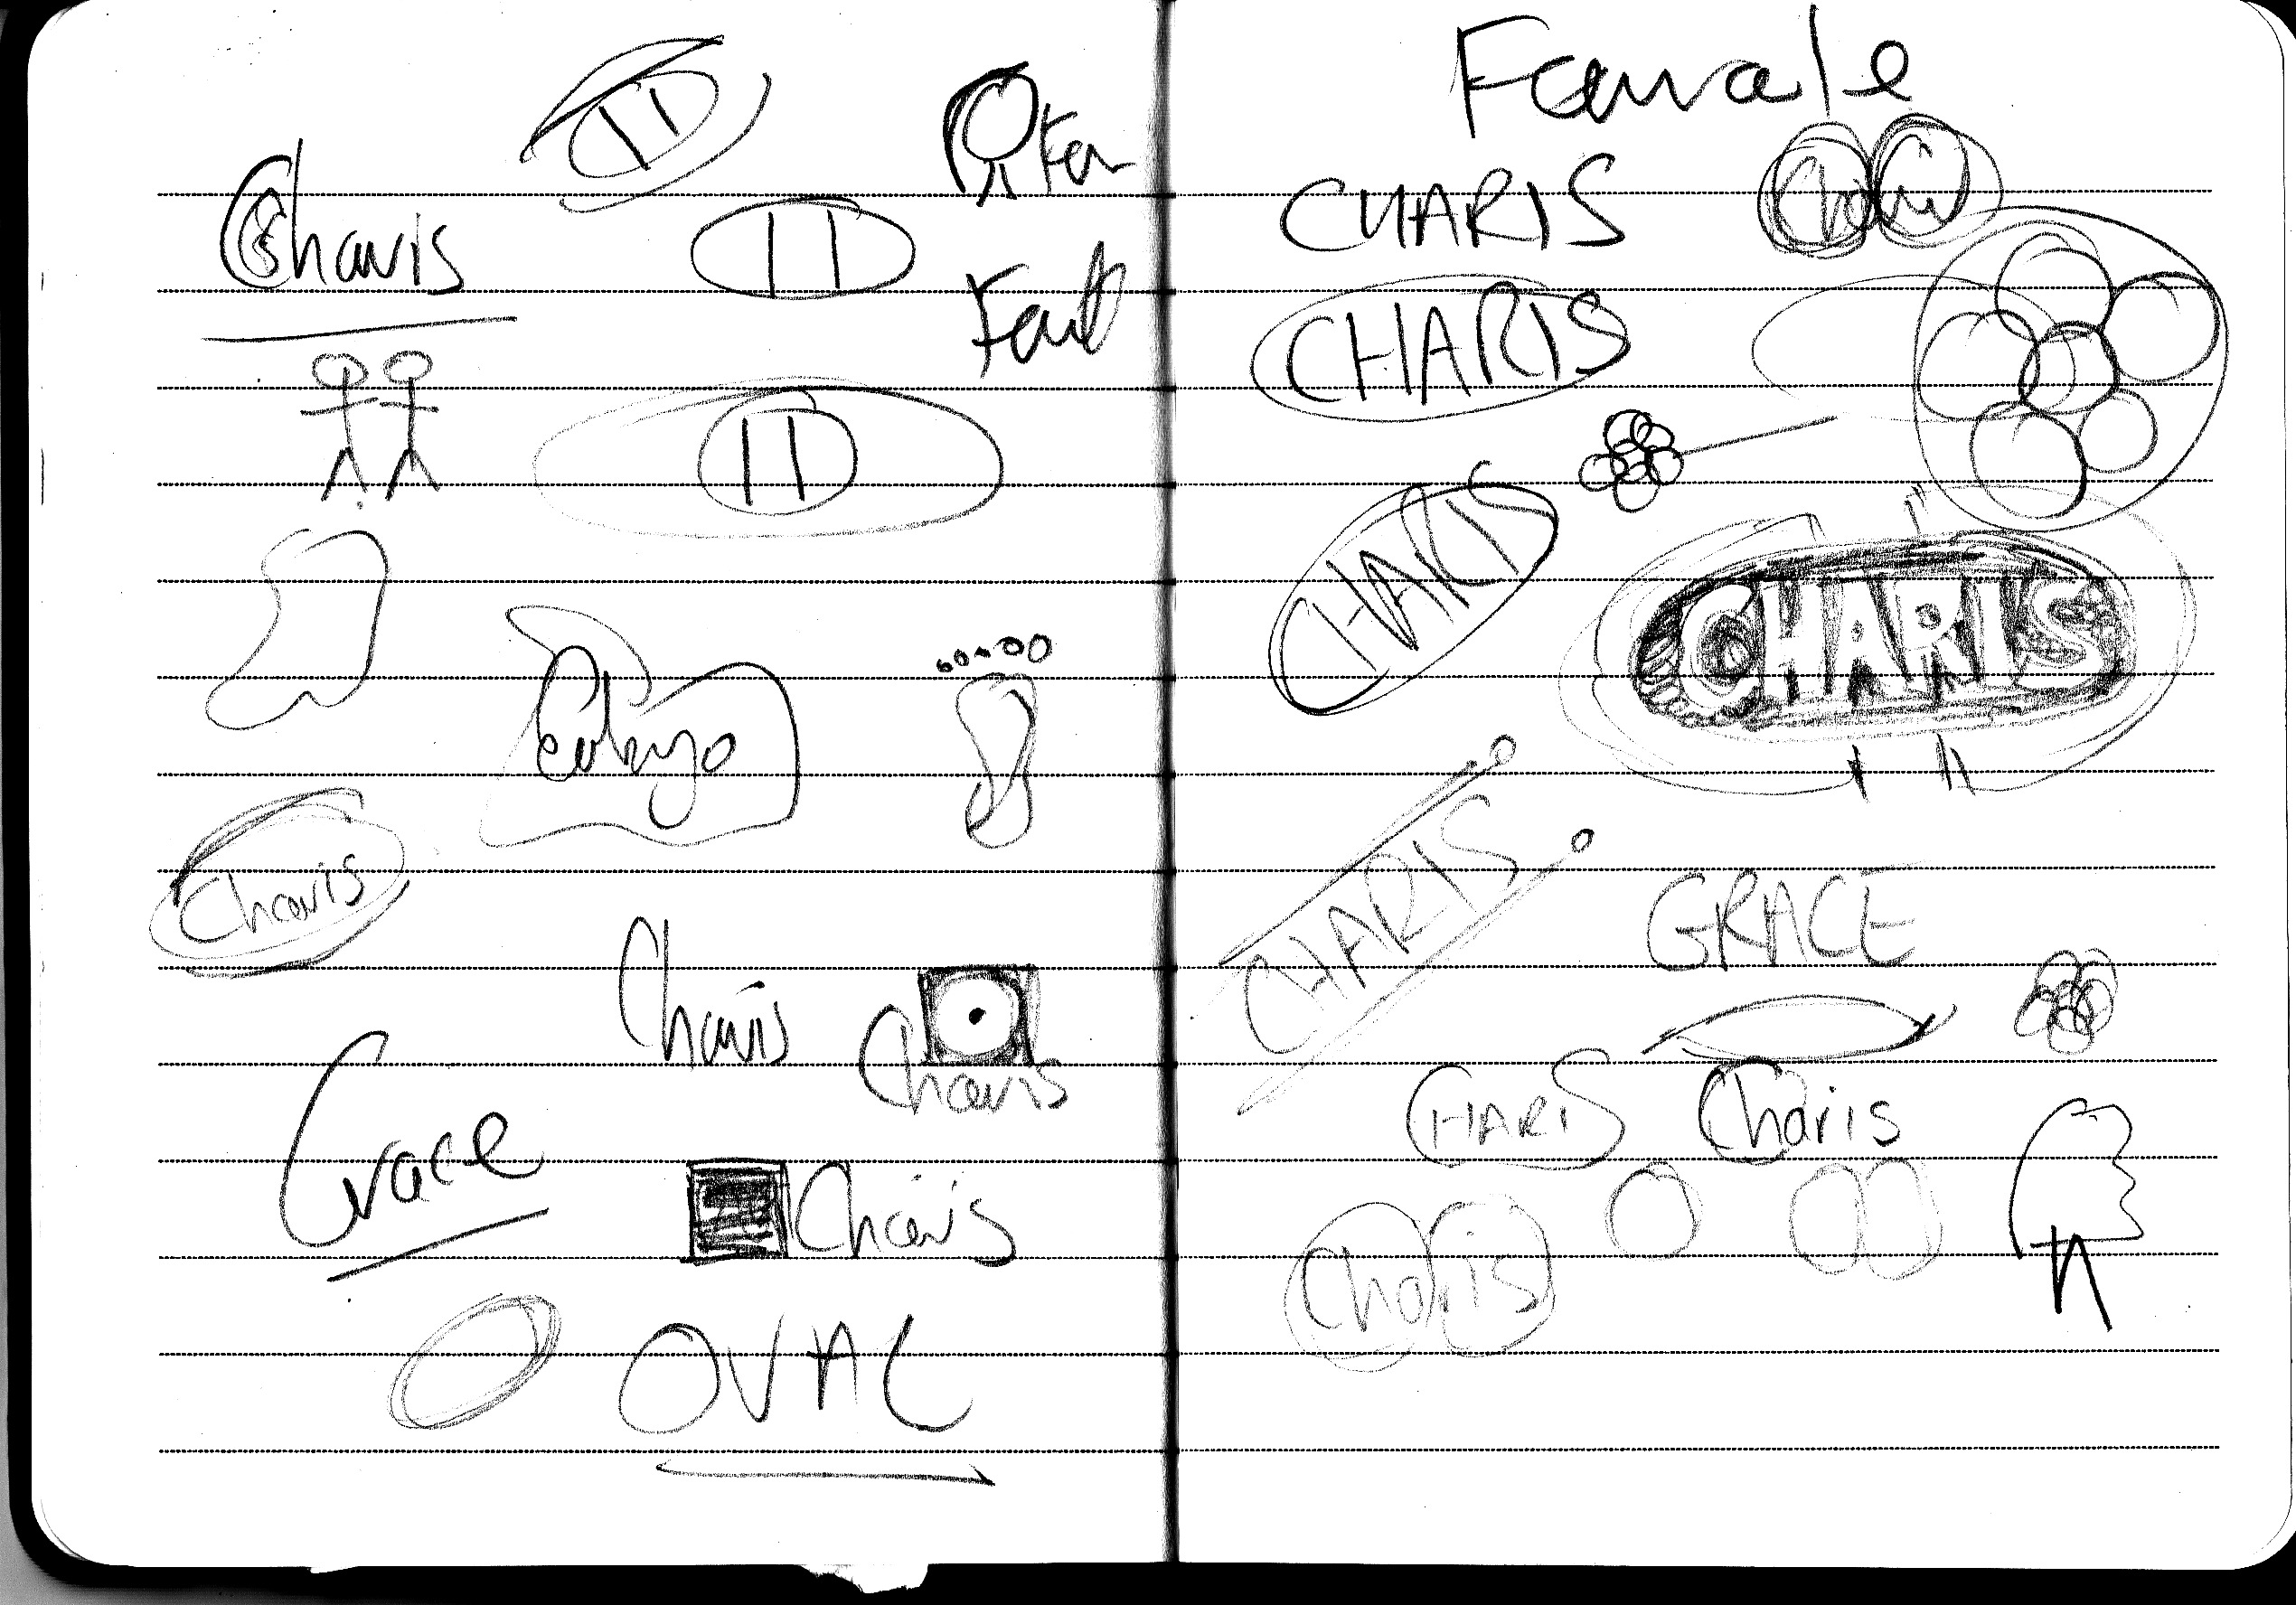 Charis-Sketches